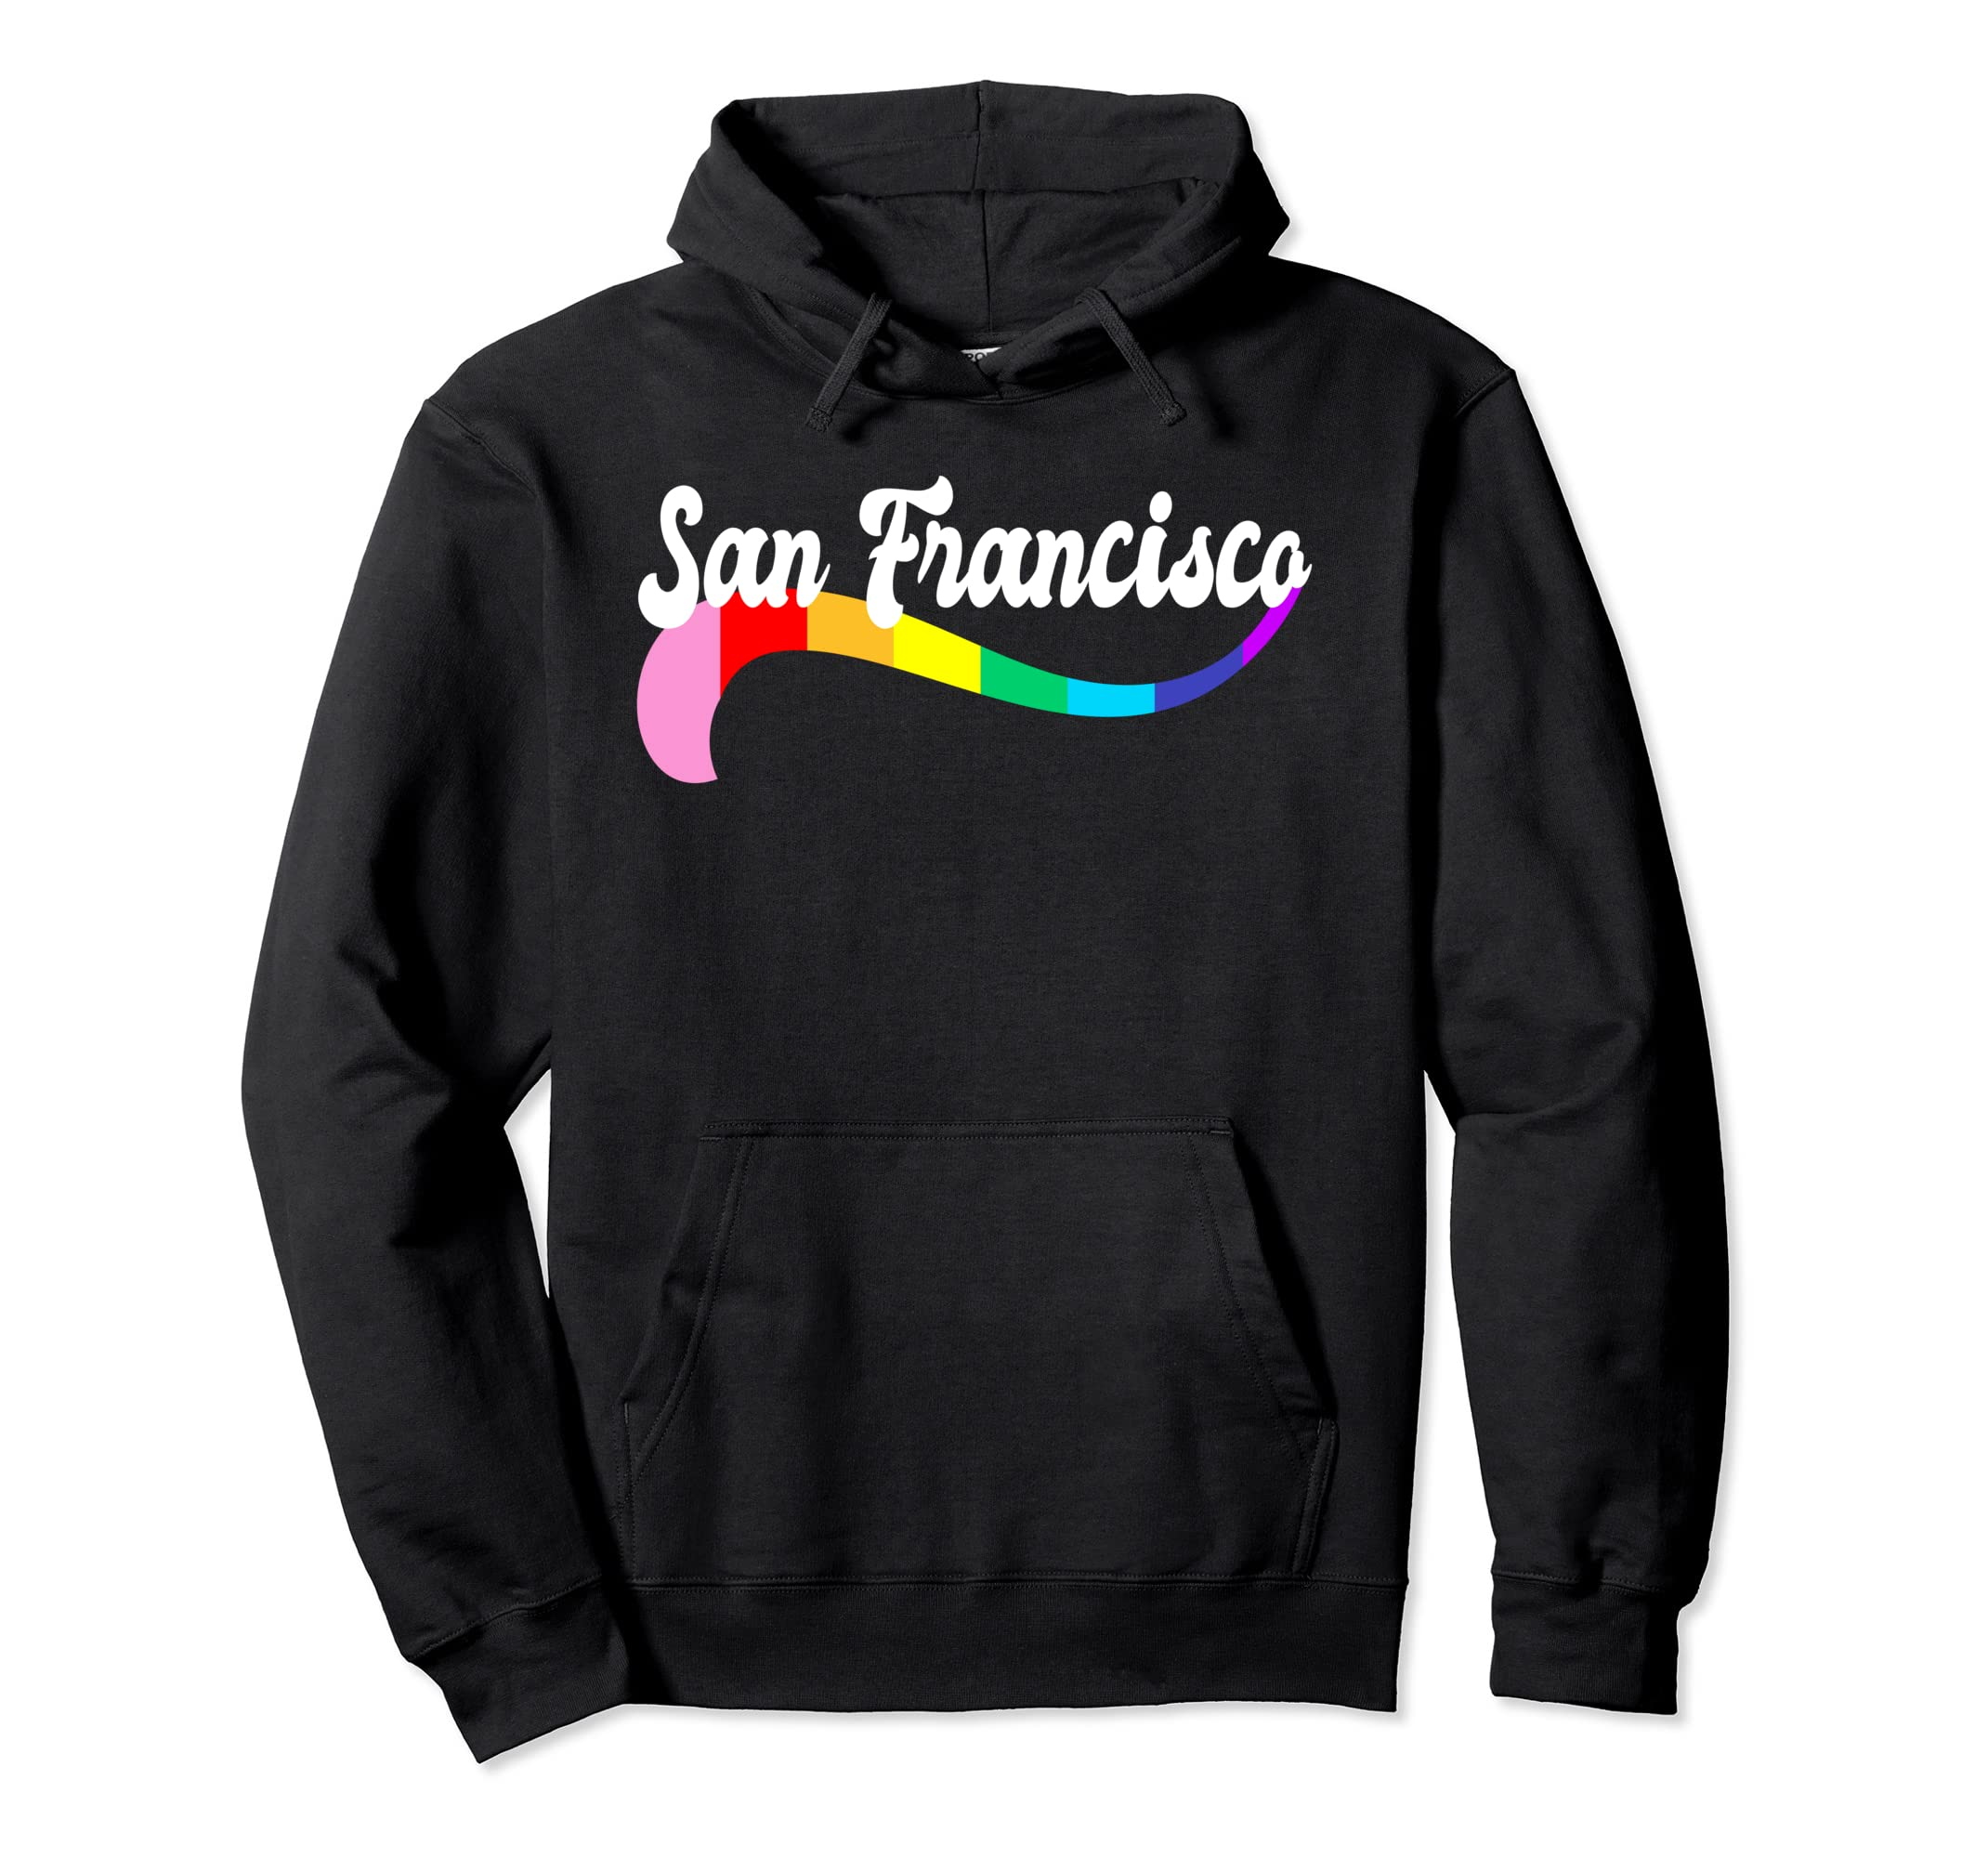 166df36543bd Amazon.com  San Francisco Gay Pride Hoody Queer Shirts Proud Homos  Clothing